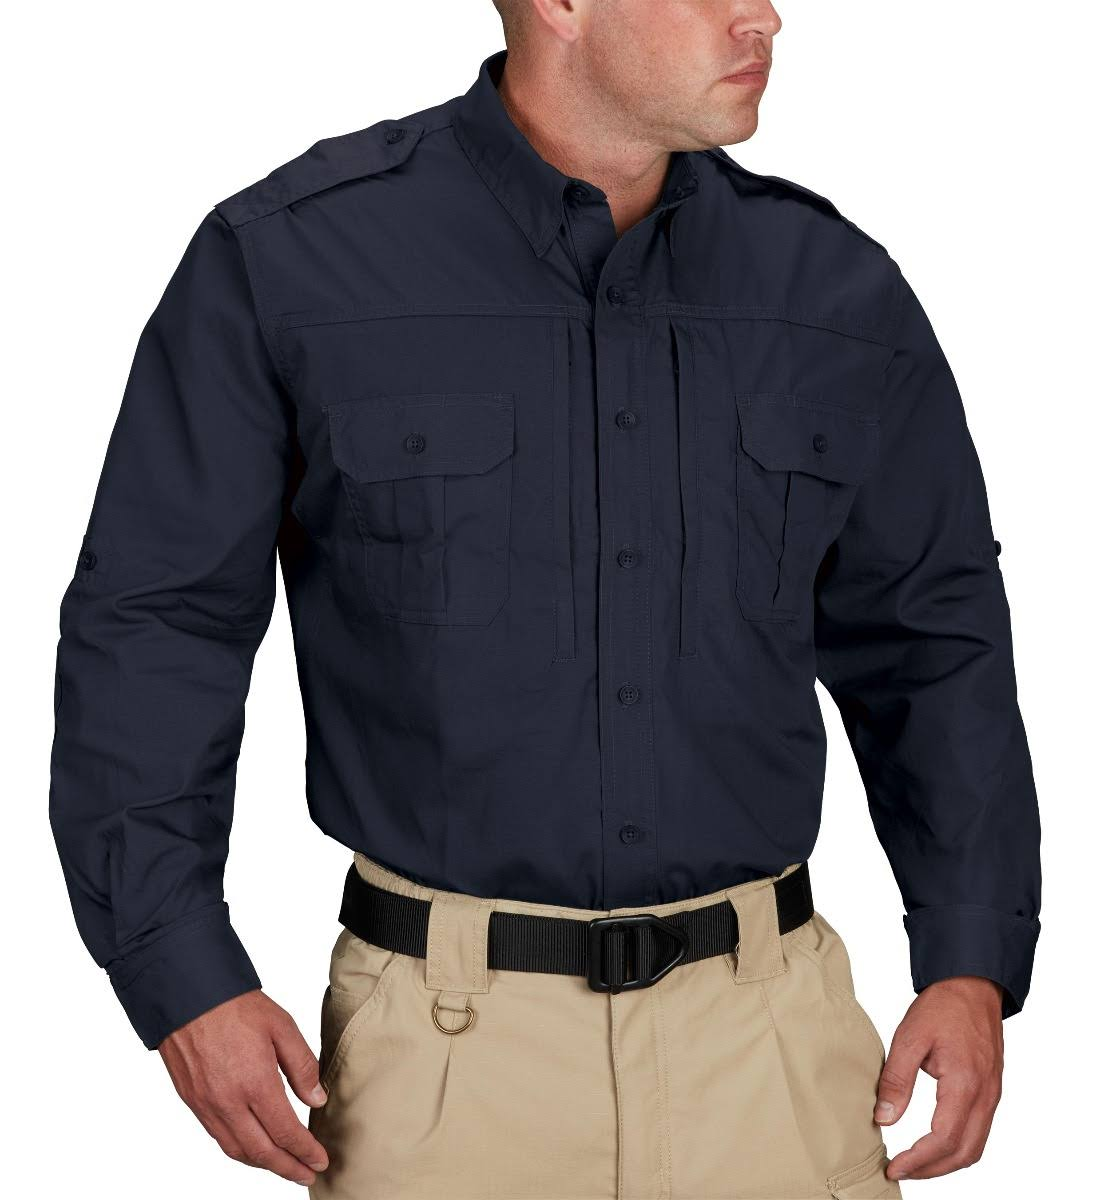 Propper Men's Tactical Shirt - Long Sleeve - LAPD Navy